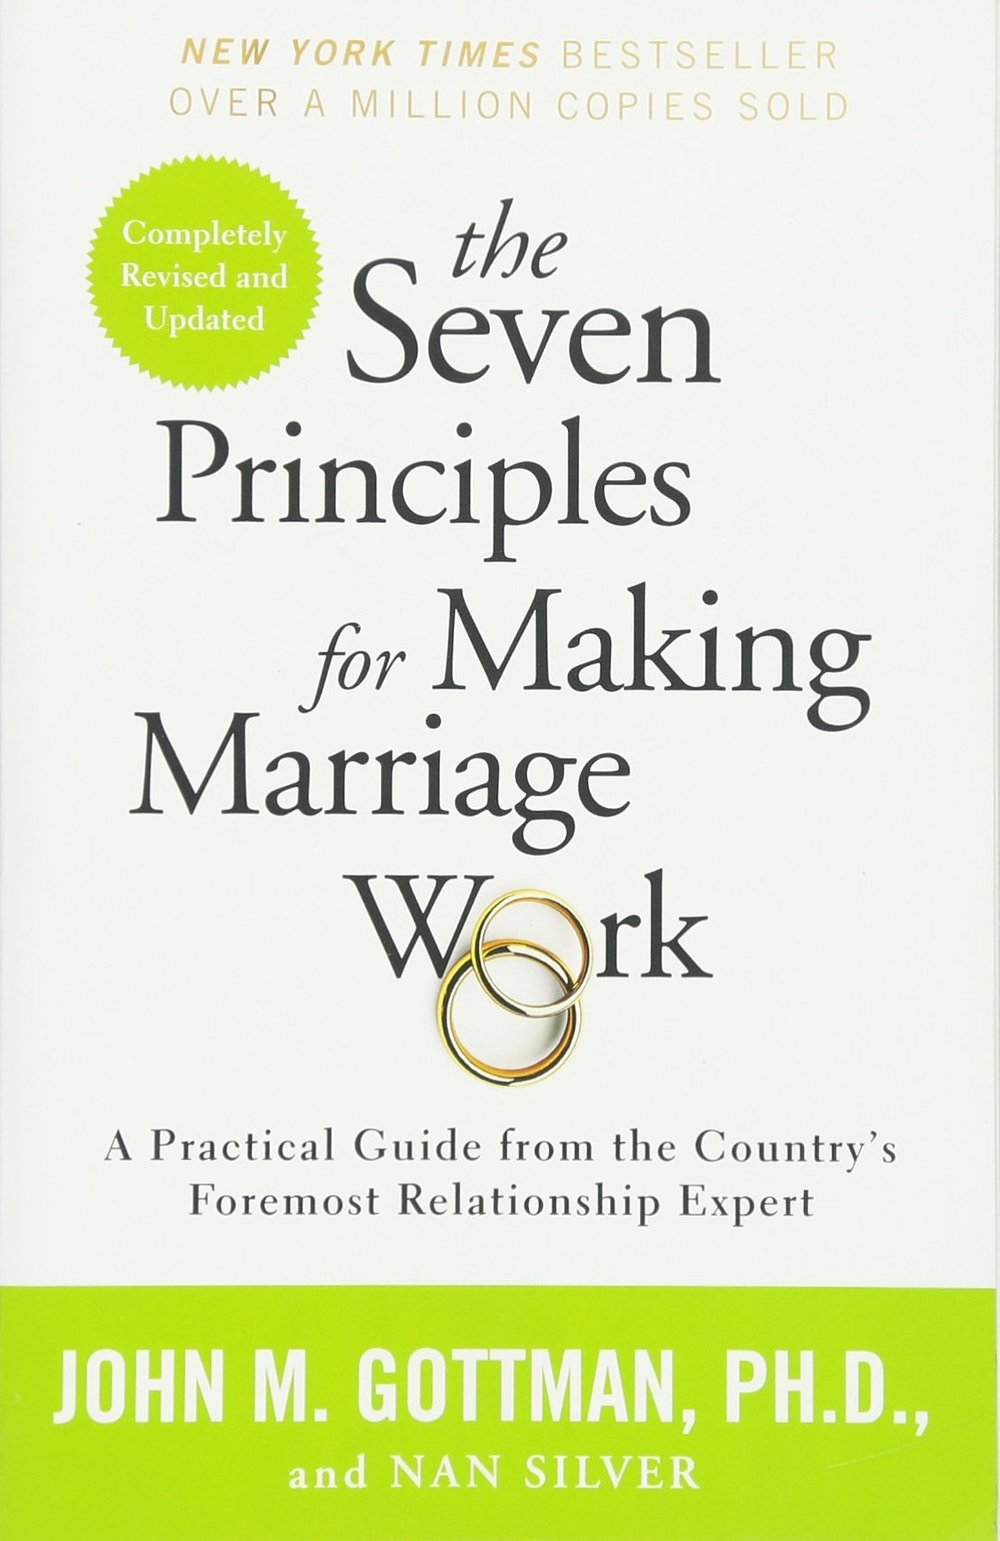 Practically Married: The Seven Principles for Making Marriage Work